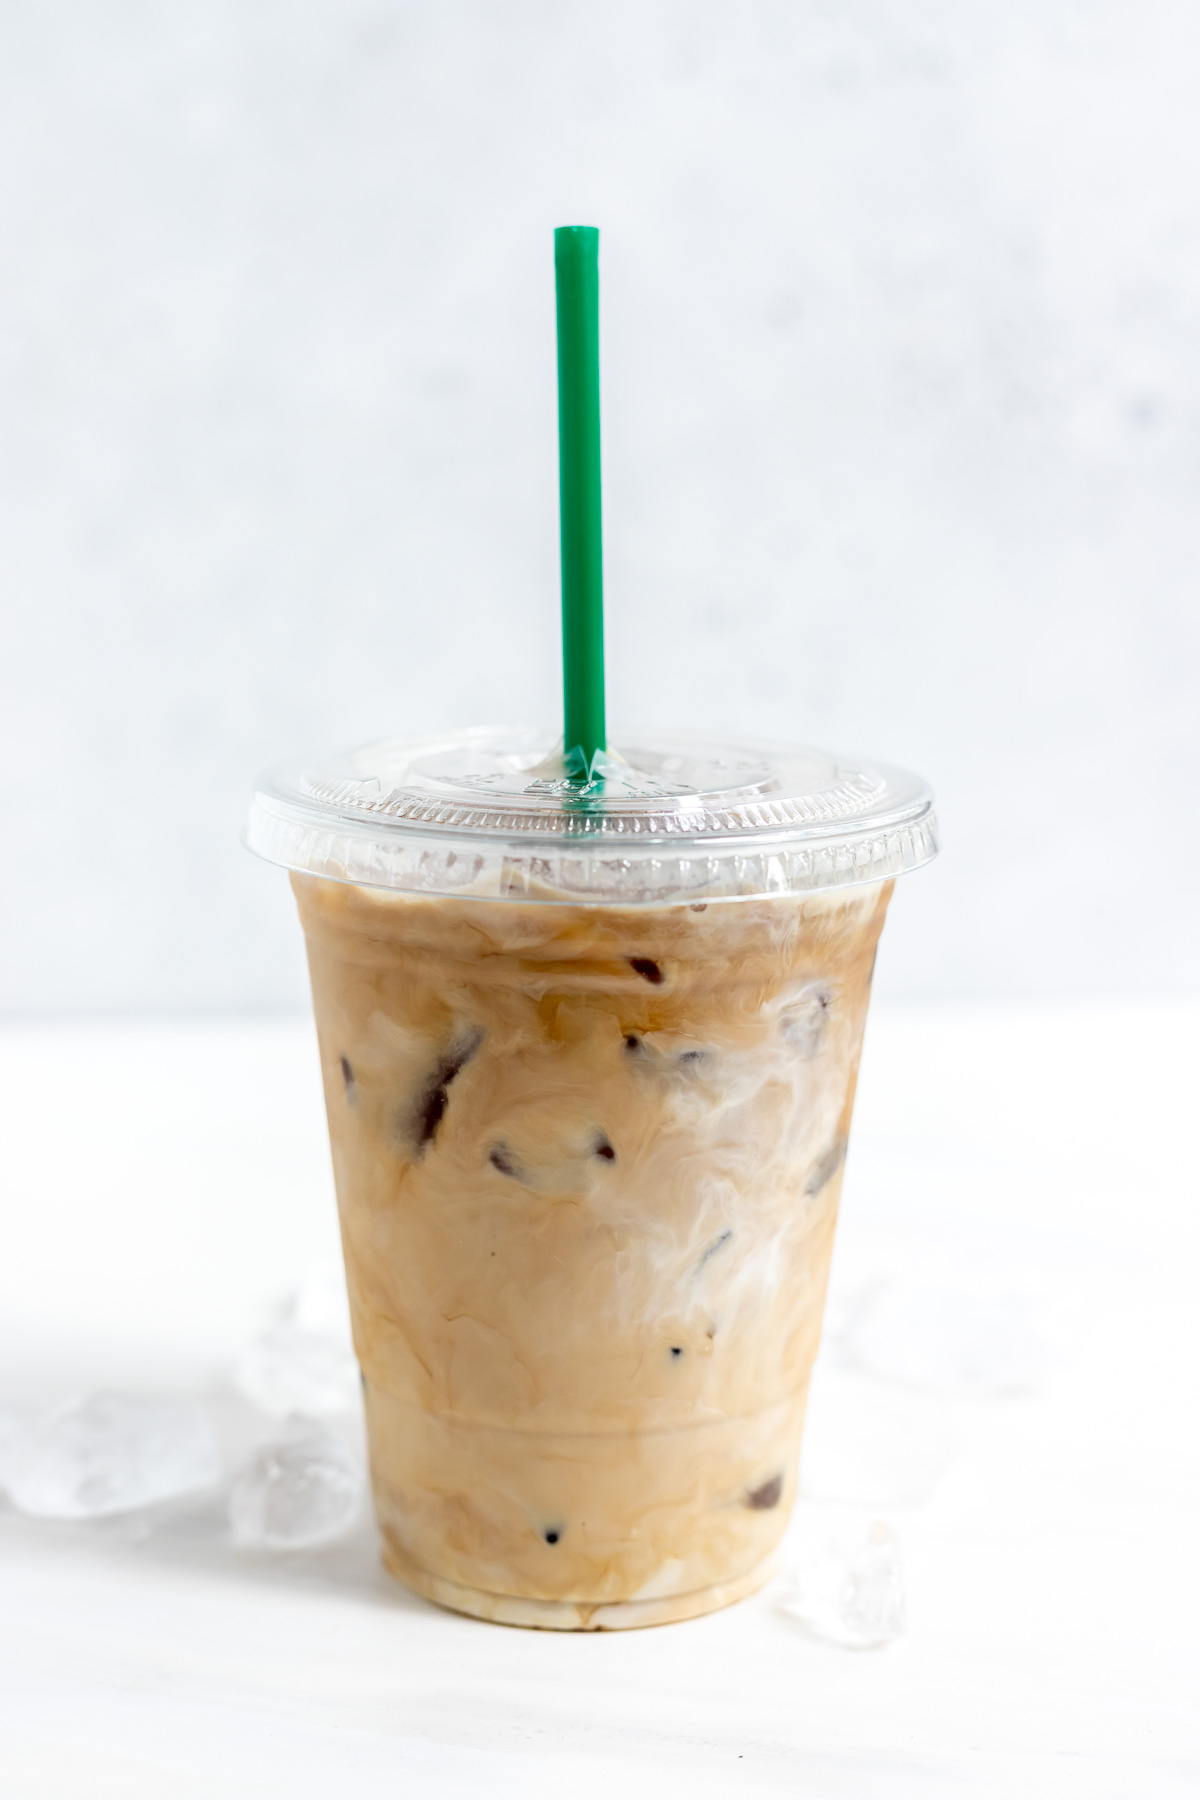 creamy iced coffee in clear plastic cup with green straw